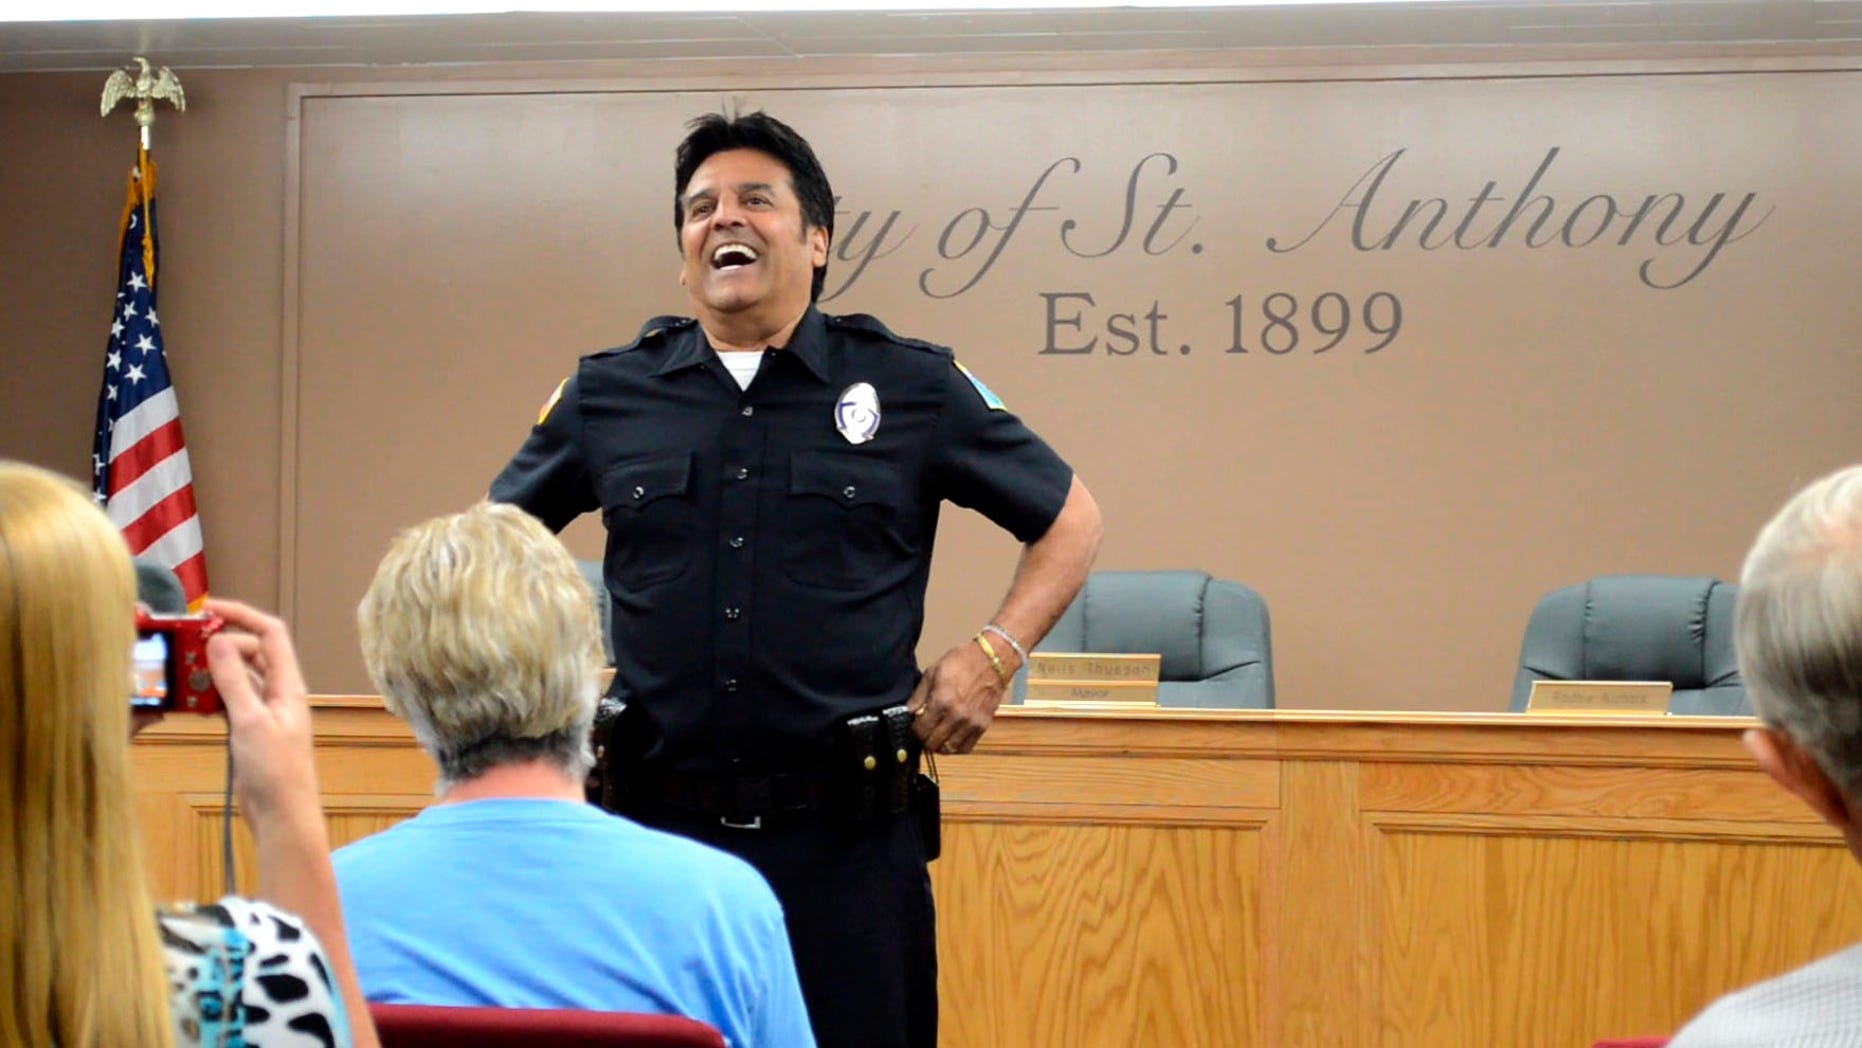 """In this Saturday, July 2, 2016, photo famed """"CHiPs"""" police officer Erik Estrada mets St. Anthony residents to discuss his efforts with the St. Anthony Police Department to stop internet enticement of children at St. Anthony City Hall. Estrada has spent the past decade working with various law enforcement departments to keep kids safe online. Following his induction Estrada as a now a St. Anthony Police Department reserve officer, he told how important it is to teach children what not to do while on the web. (Lisa Dayley-Smith/Rexburg Standard Journal via AP) MANDATORY CREDIT"""